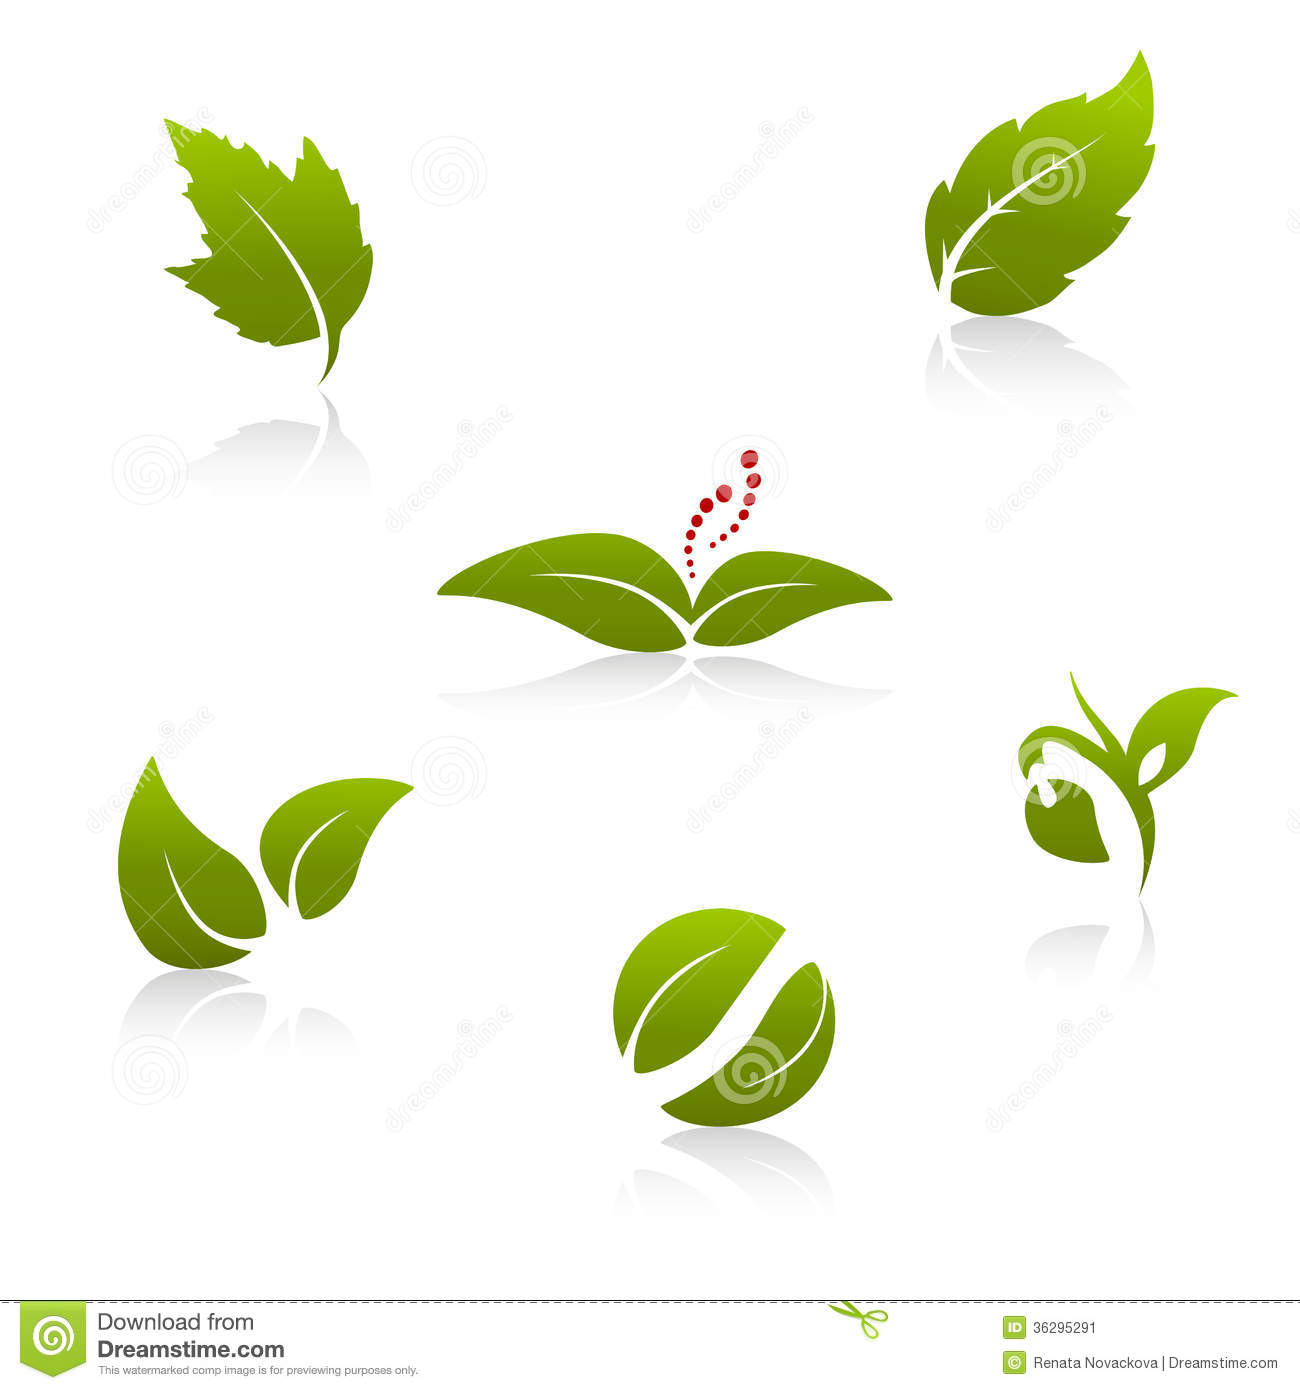 Green Nature Symbols Leaf Icon Silhouette With Shadow